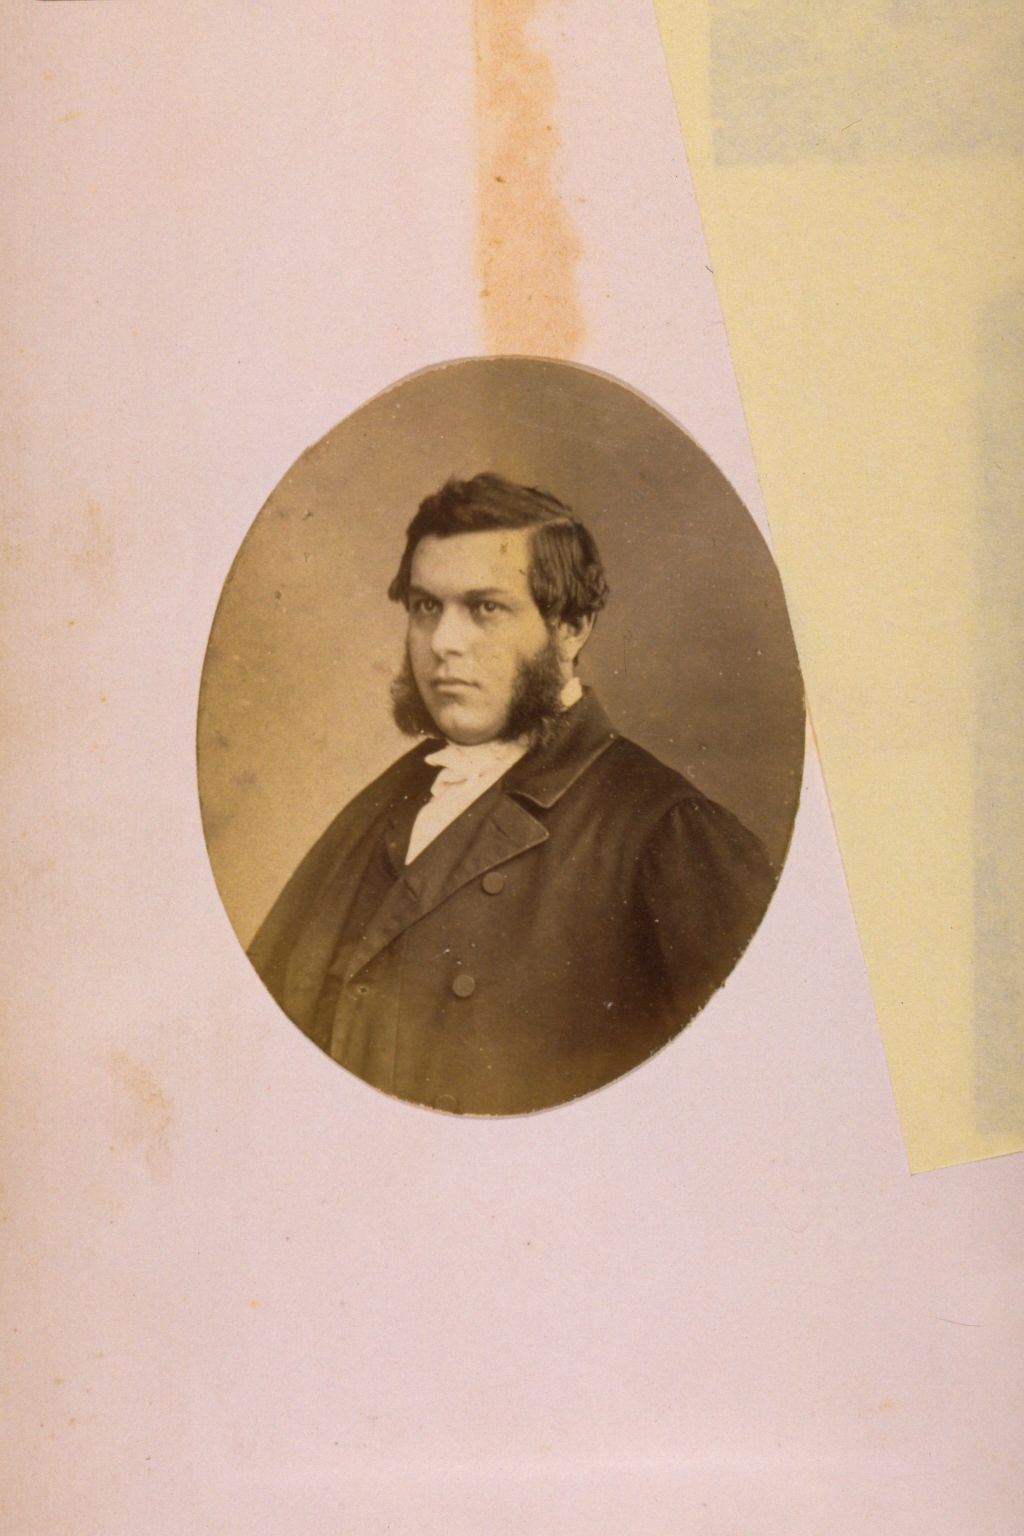 [Unidentified man].